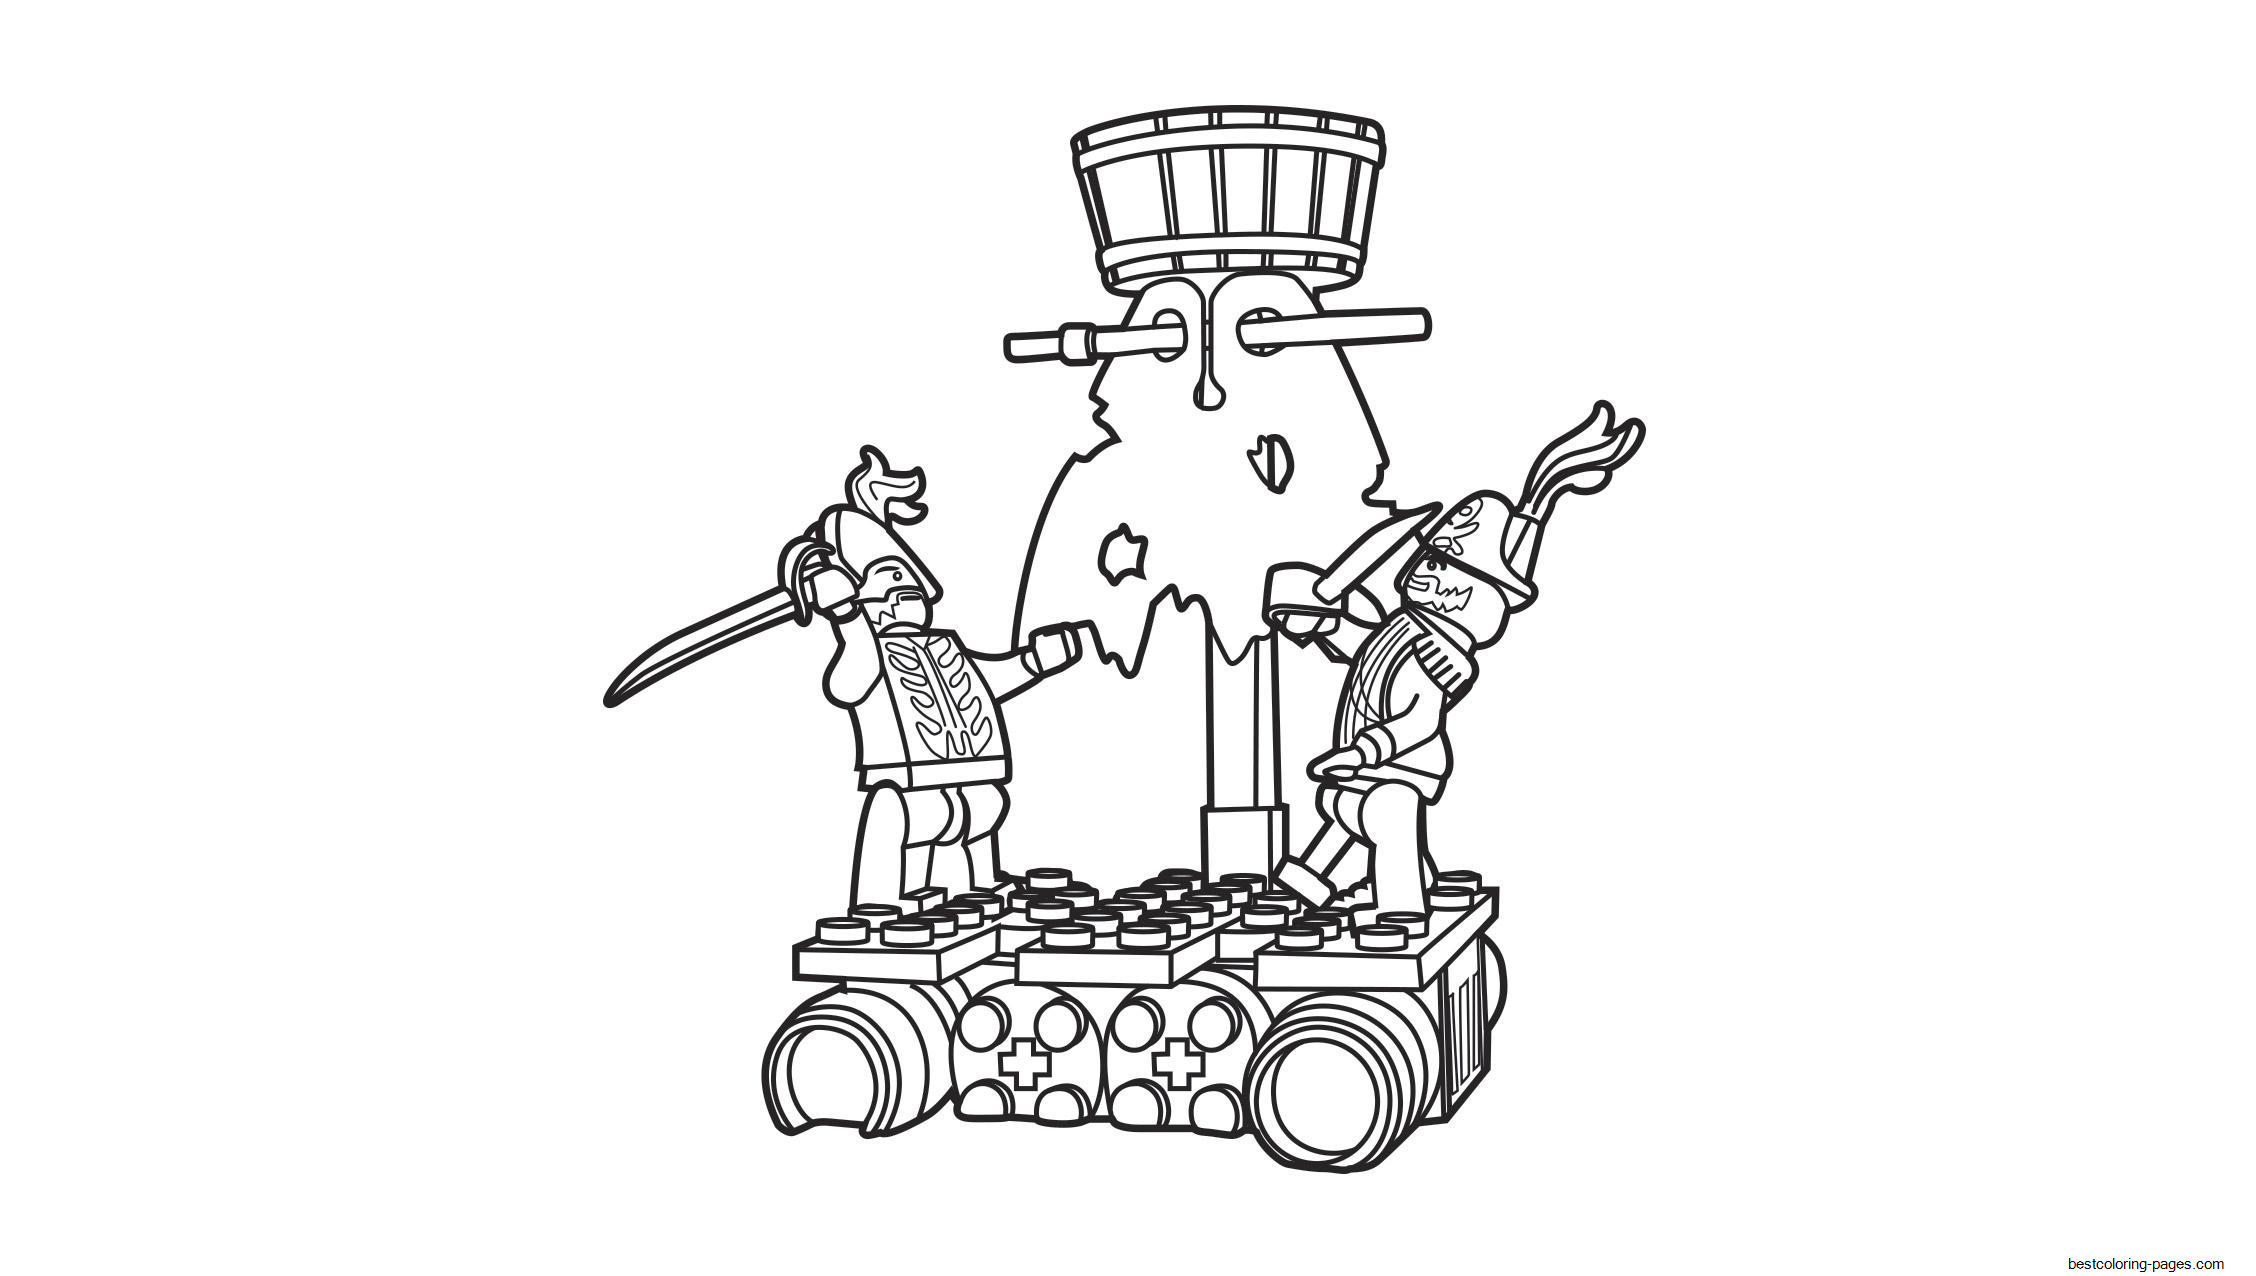 pirate lego coloring pages lego pirates destroy boat coloring pages printable for pirate lego coloring pages